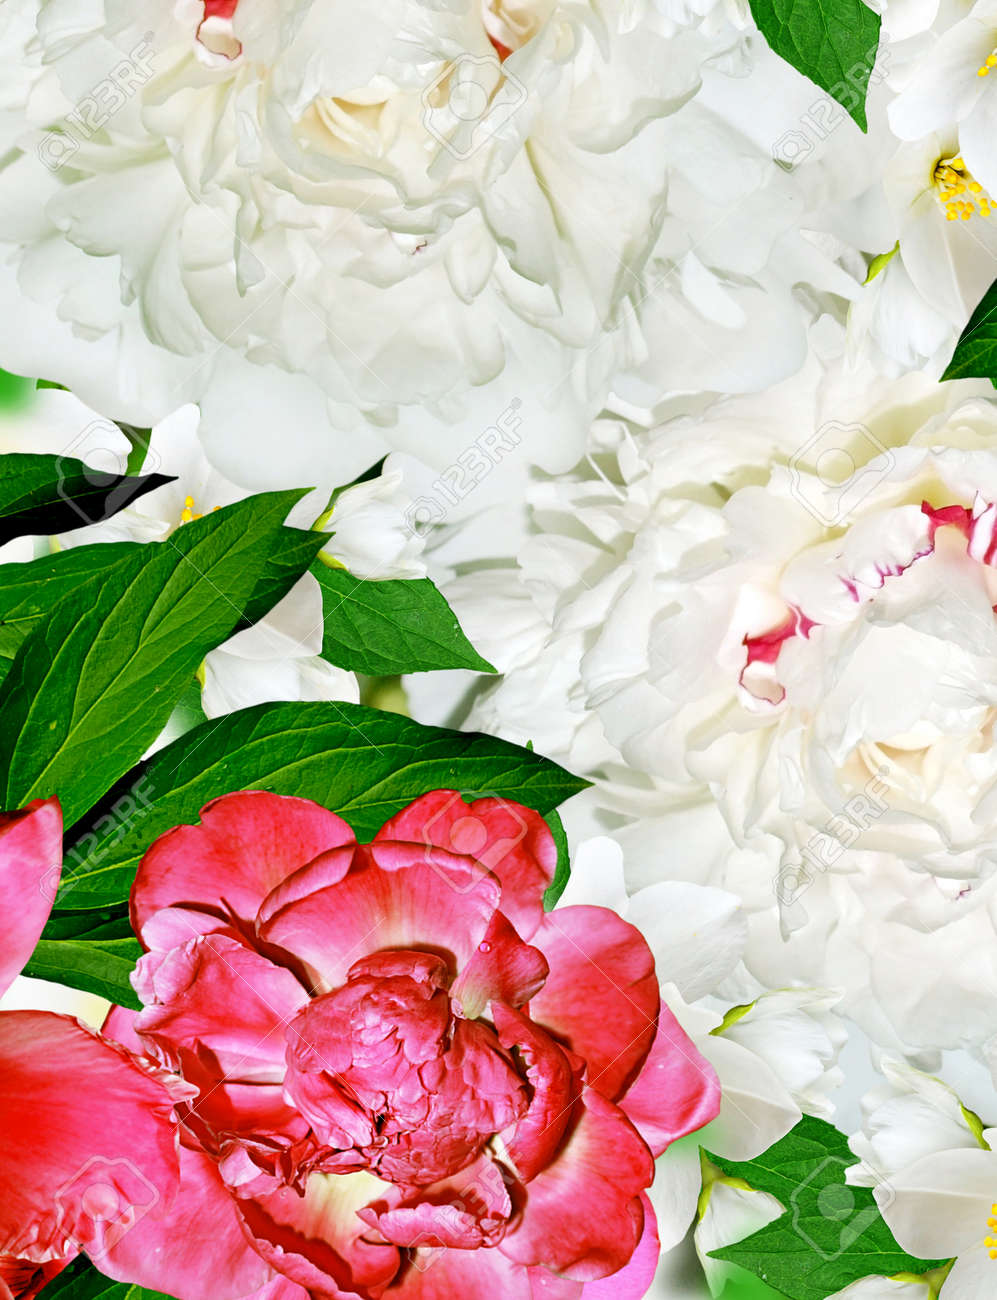 Spring Flowers Peonies And Jasmine Stock Photo Picture And Royalty